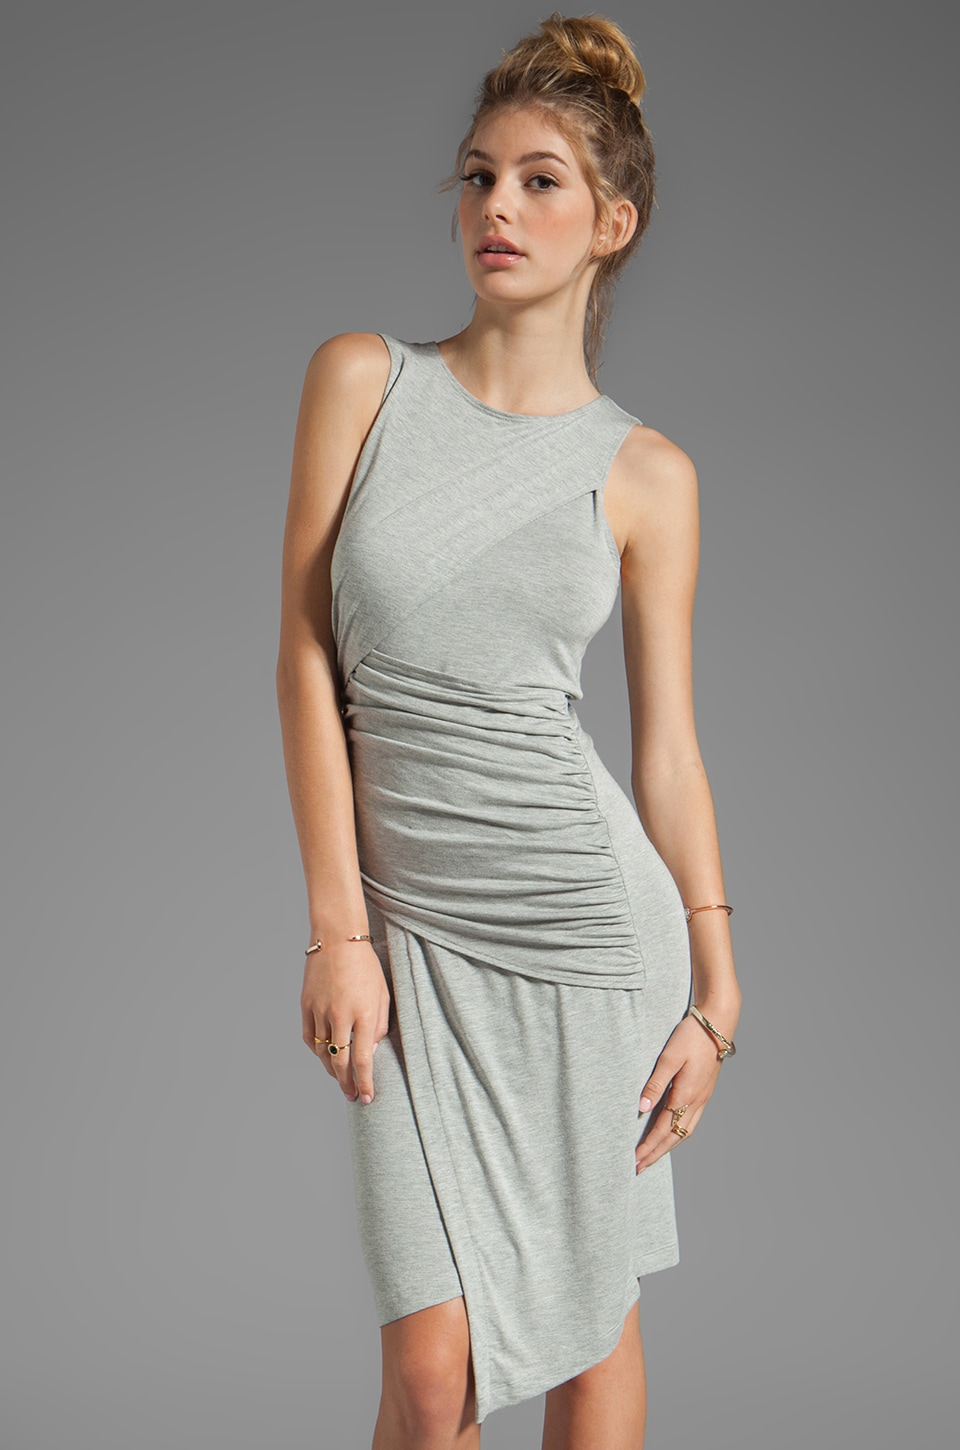 Kain Mariposa Dress in Light Heather Grey